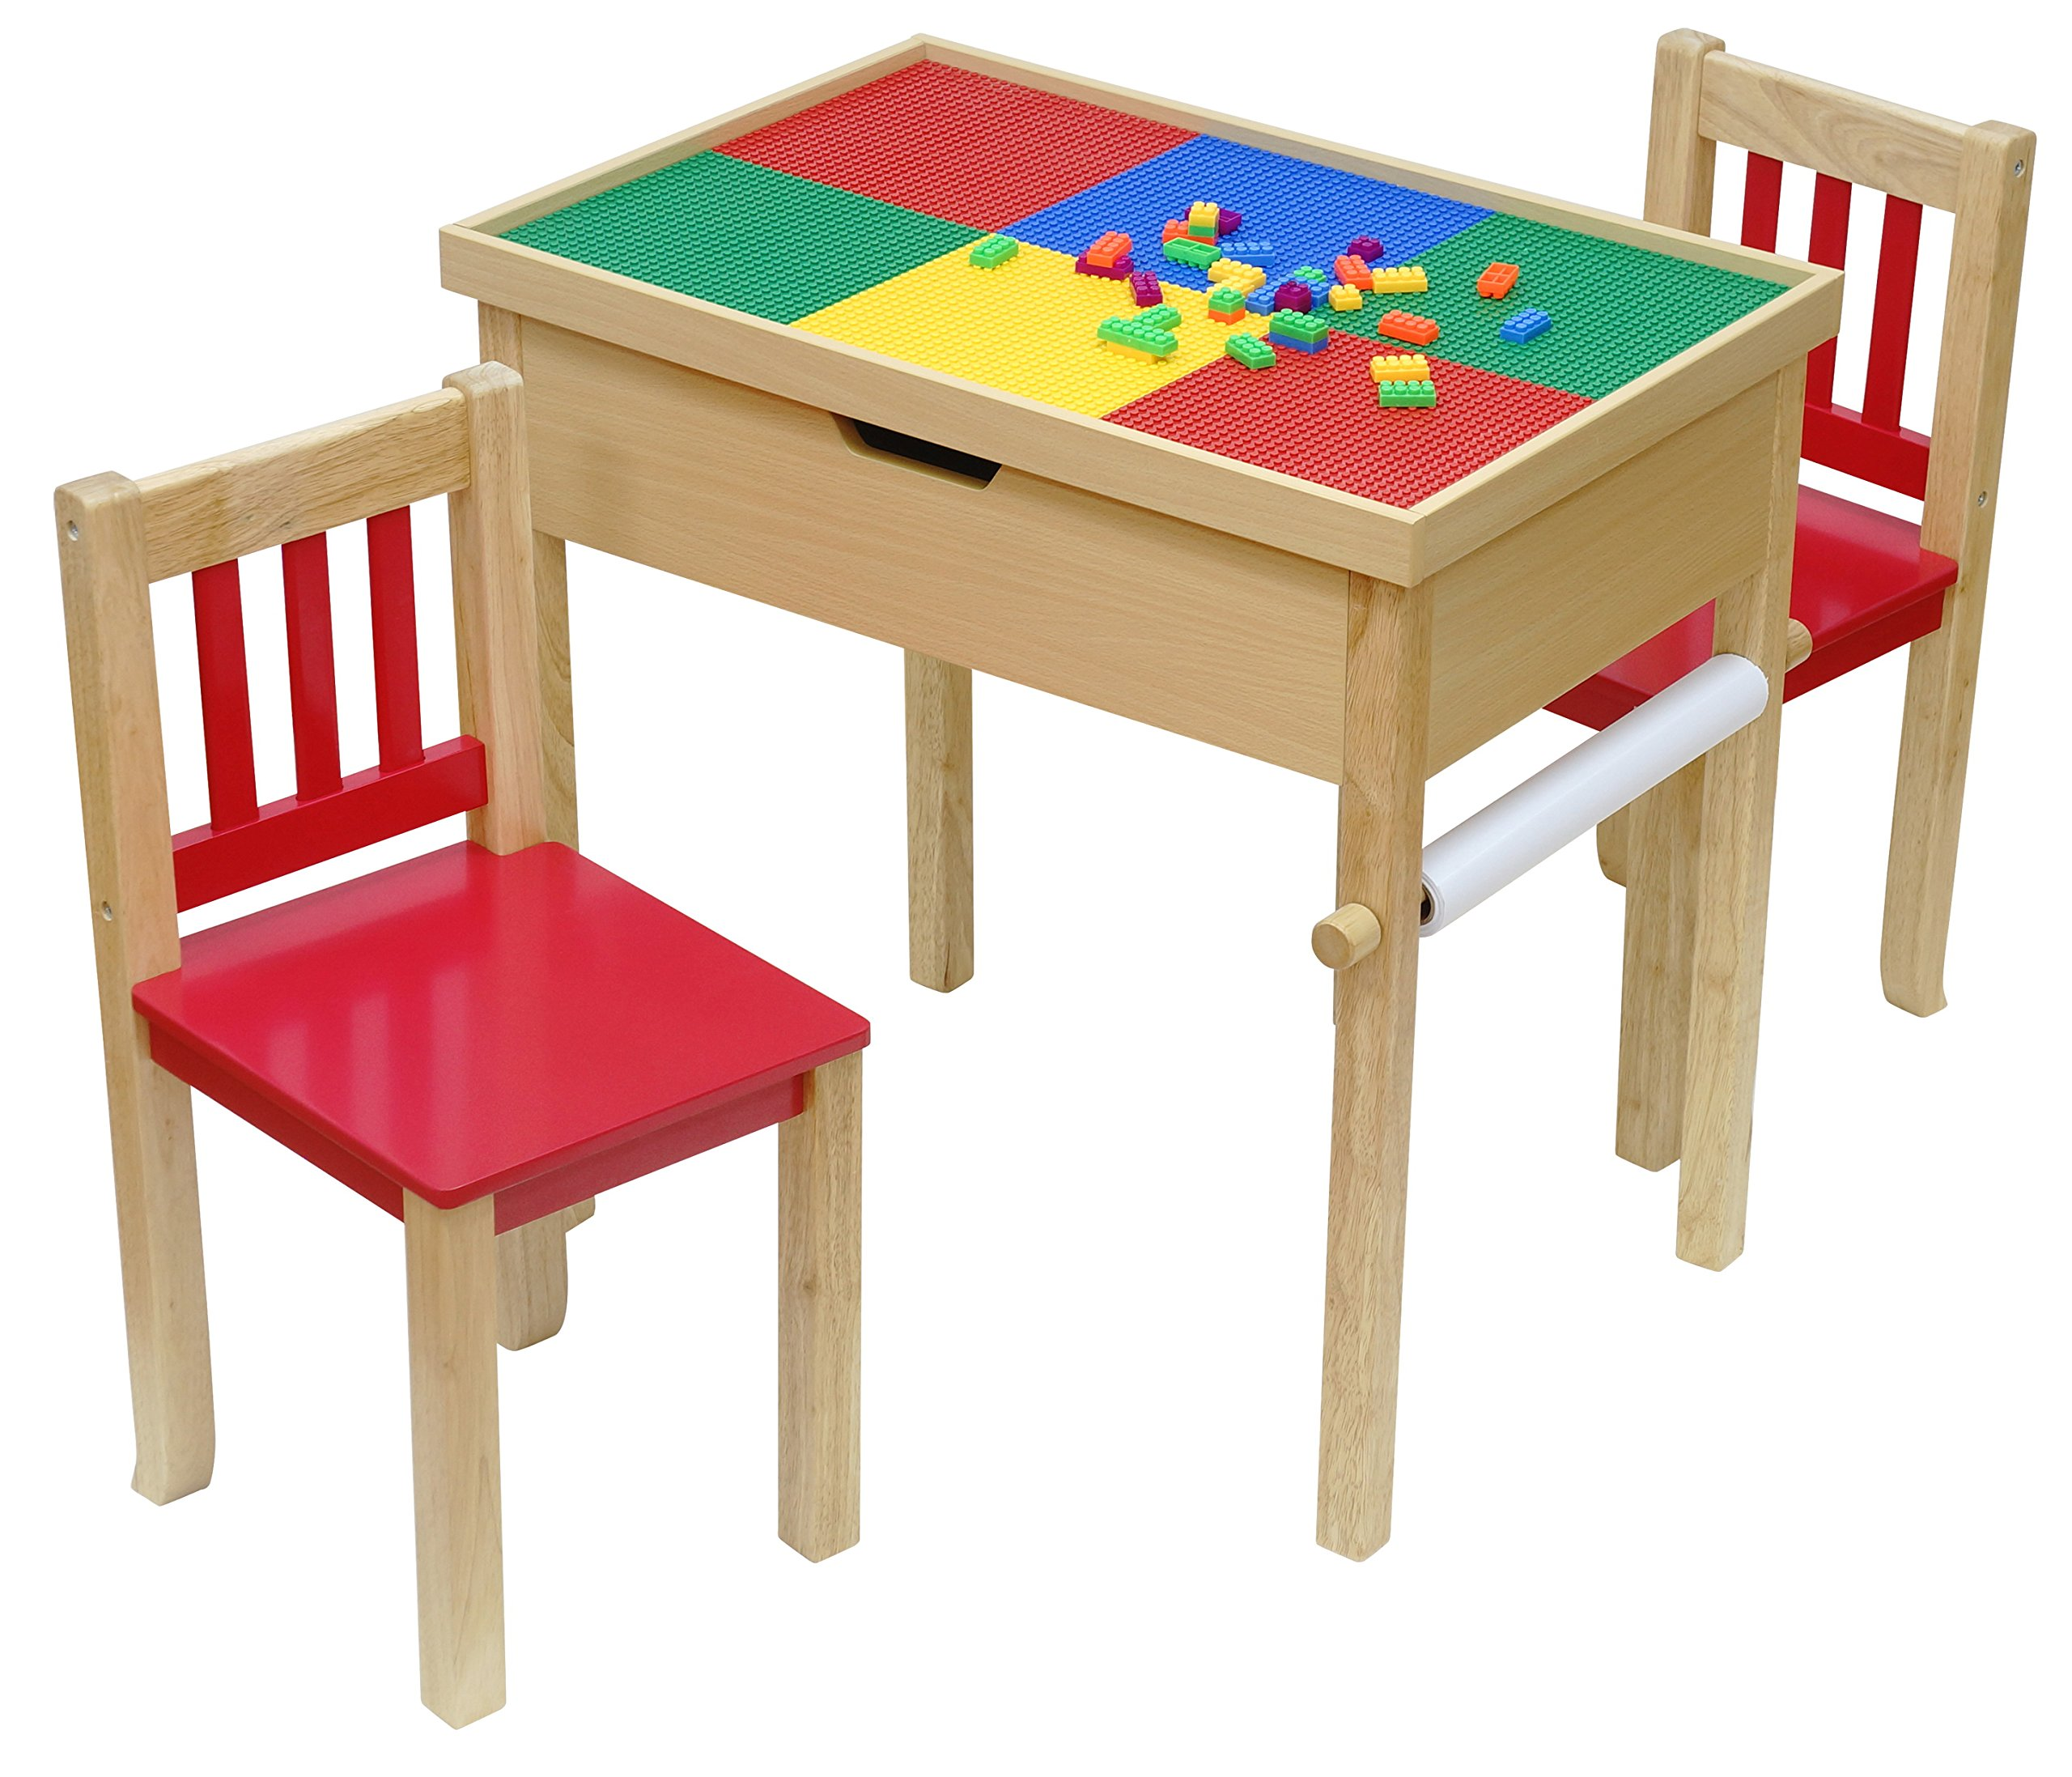 O'Kids All in Fun Premier 6-in-1 Multi-Function Flip Top Table and Chair Set